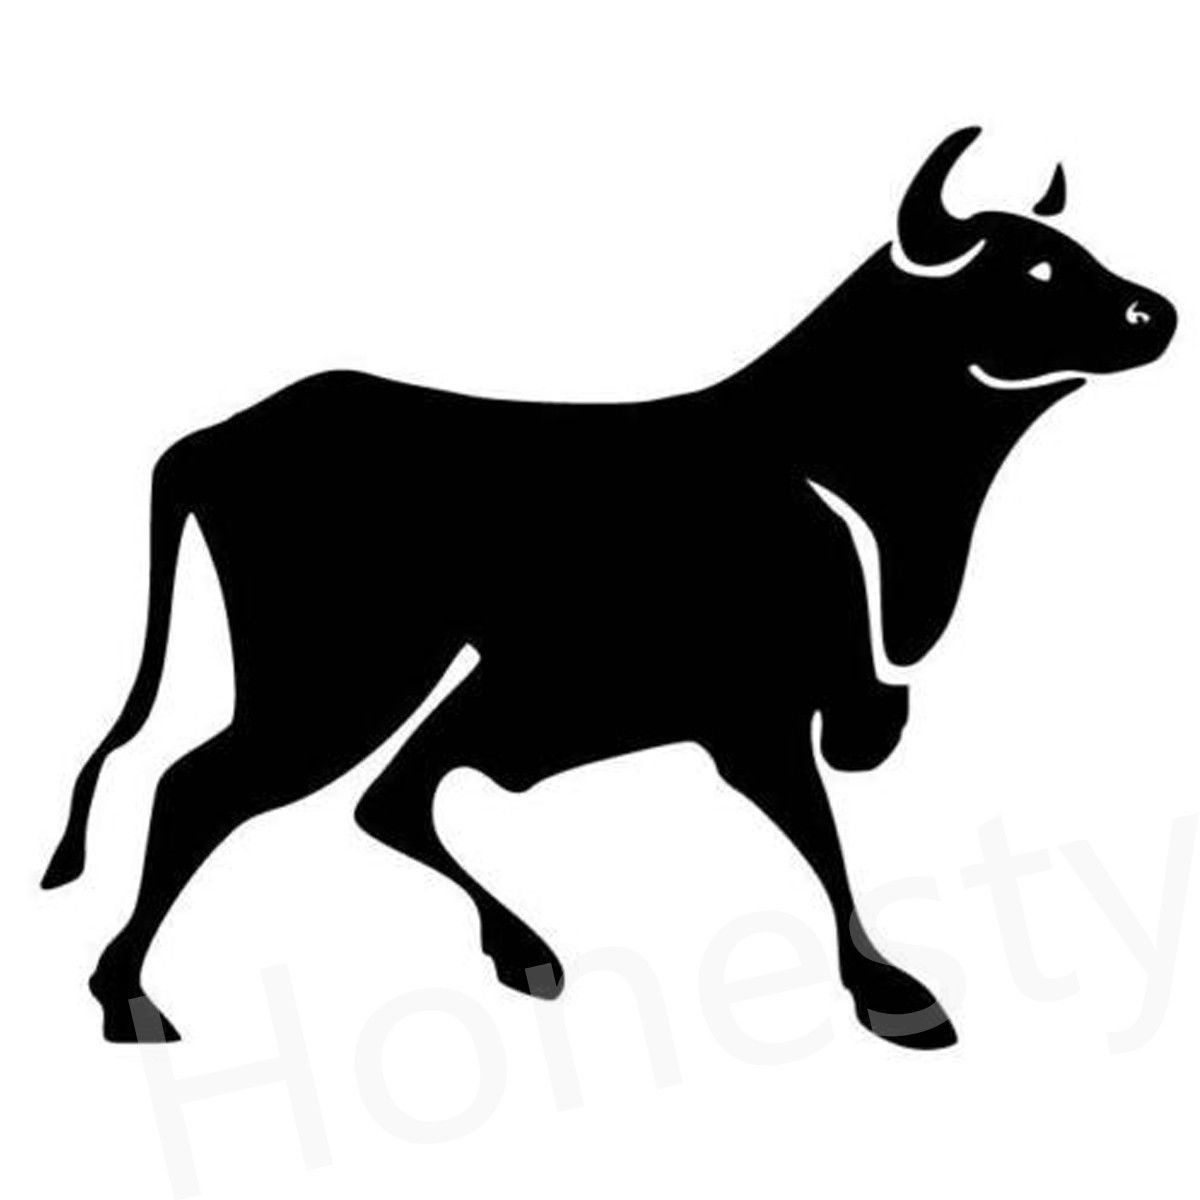 Bull Standing Silhouette Car Wall Home Glass Window Door Auto Car Truck Laptop Black Animal Vinyl Decal Sticker Decor Gift